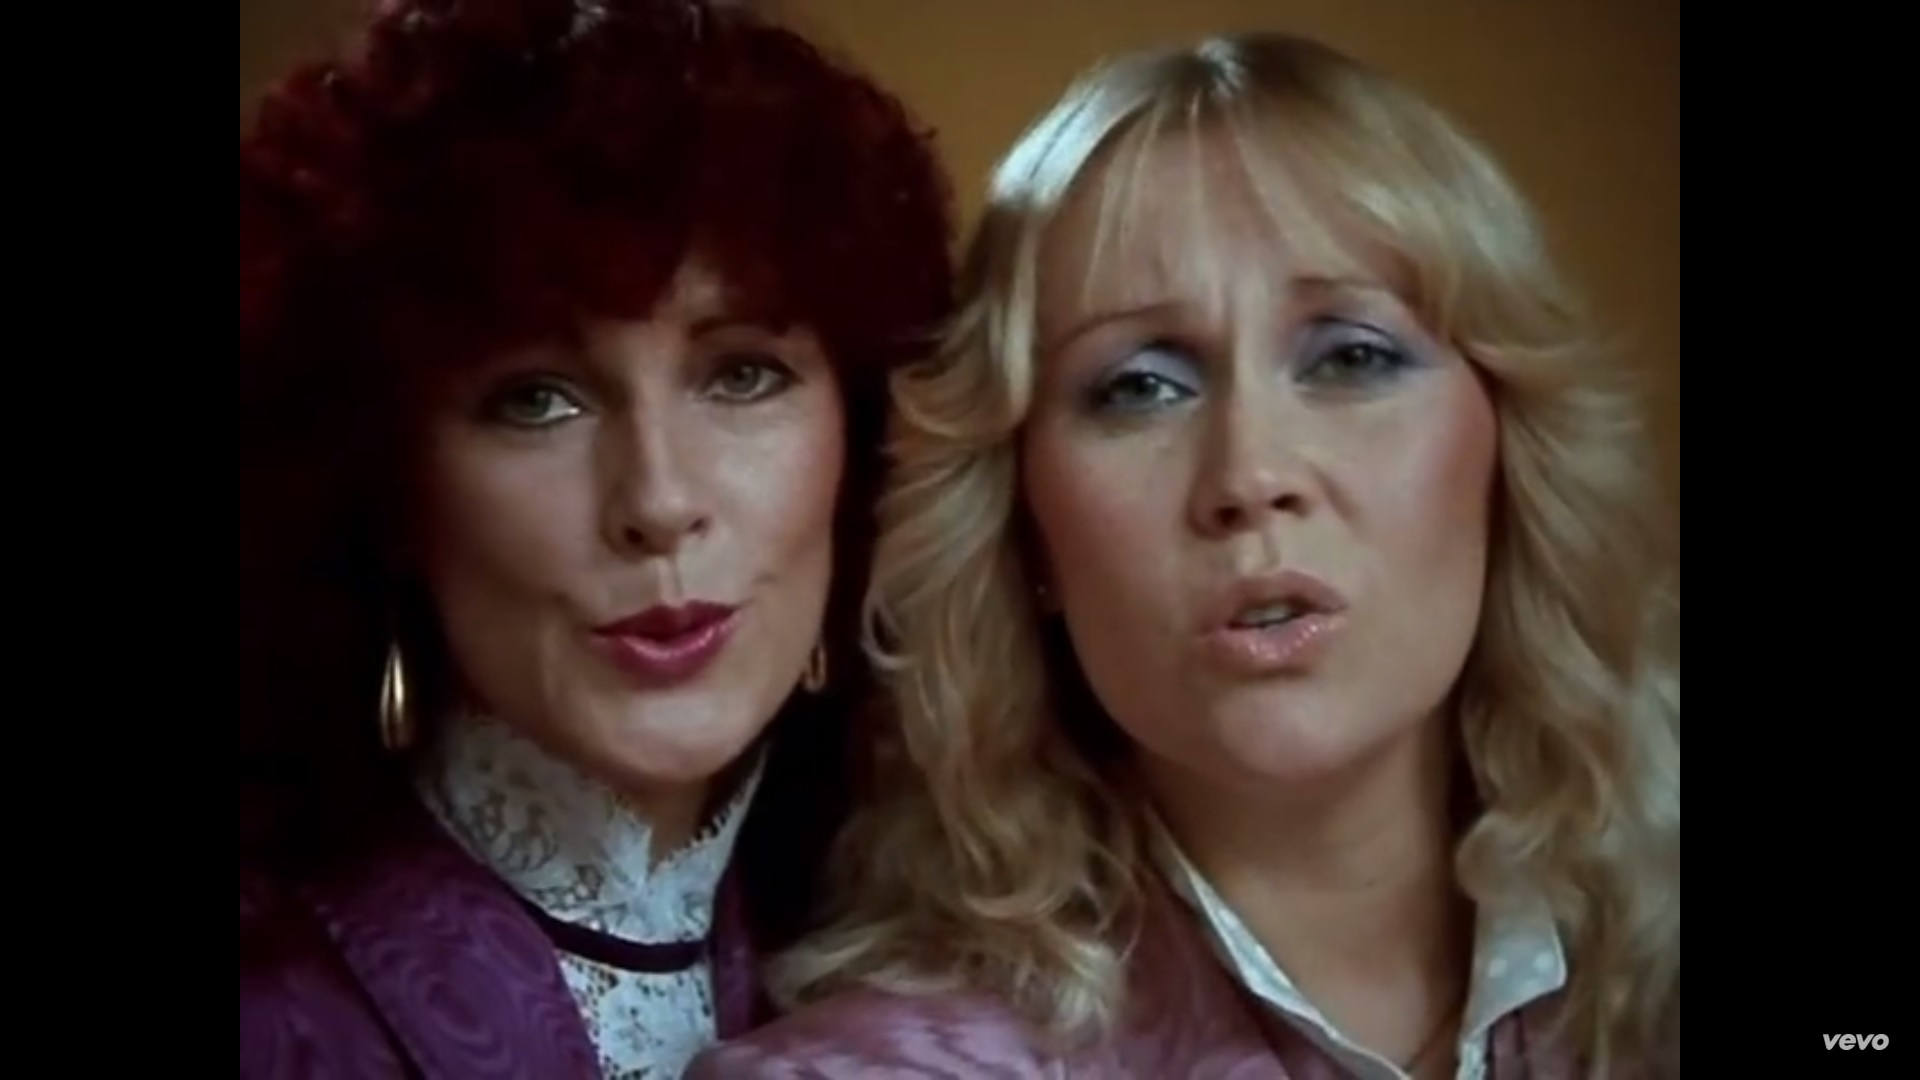 abba happy new year screenshot vevo | The Lonely Tribalist